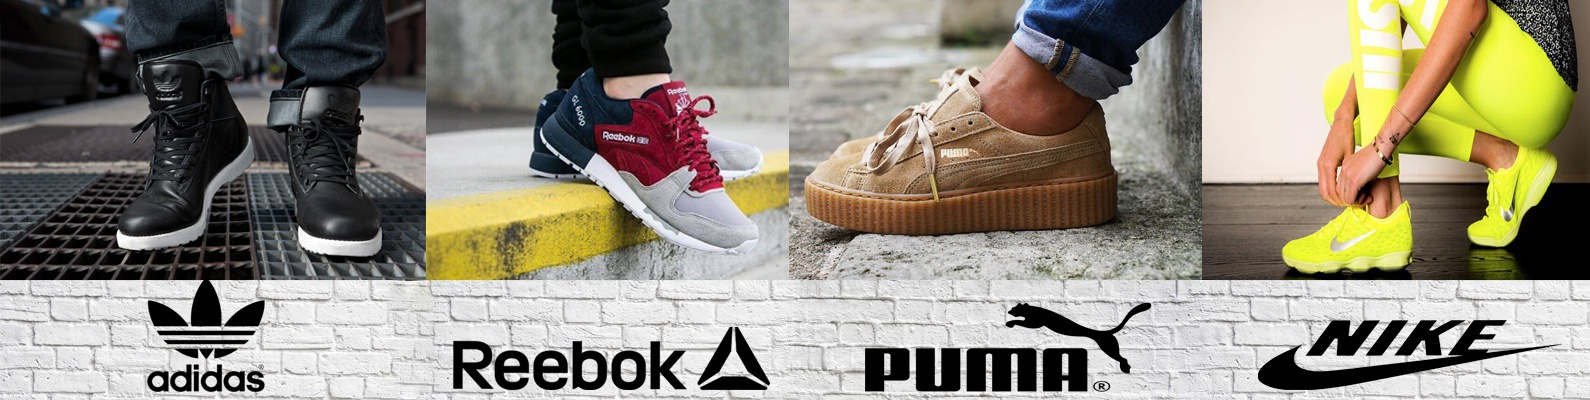 with adidas and reebok combined Adidas and reebok shine, foresee positive combined currency-neutral sales of the adidas and reebok brands continued to show particularly strong growth in.